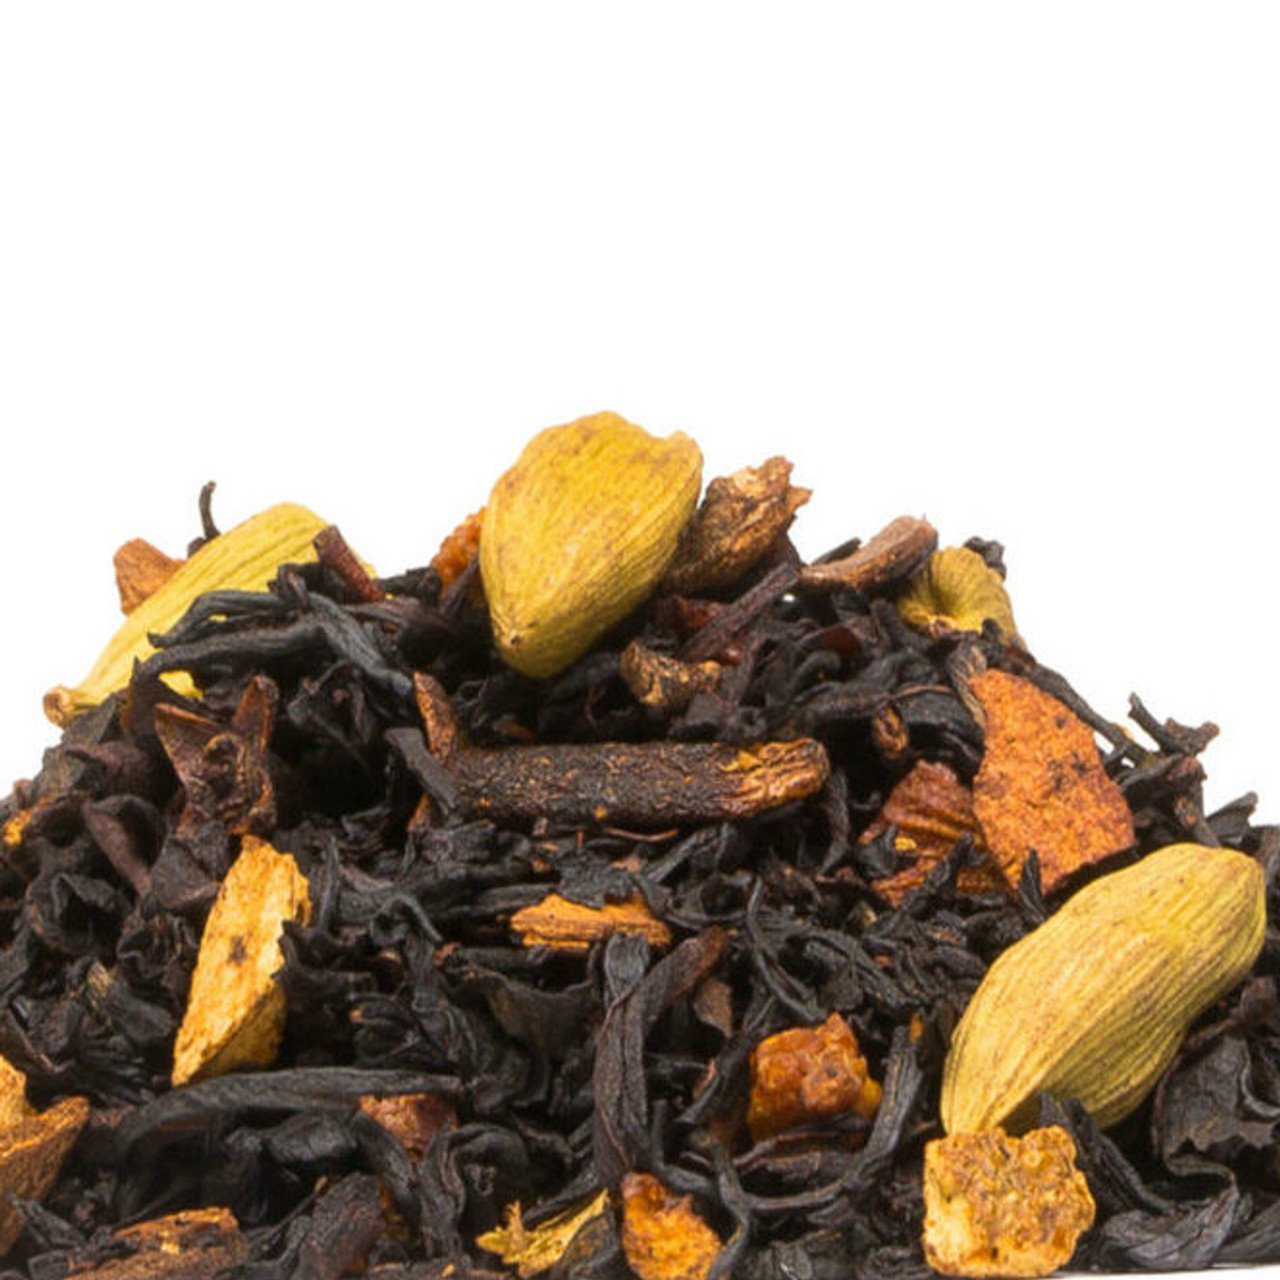 Chai Classic combines Indian Assam black tea with  cinnamon, cloves, cardamom and orange peel that will allow you to create your own Chai Classic tea anytime you feel the urge. Add steamed milk for an instant chai latte! Steep: 1-1.5 tsp, Boiling Water, 3-5 Minutes